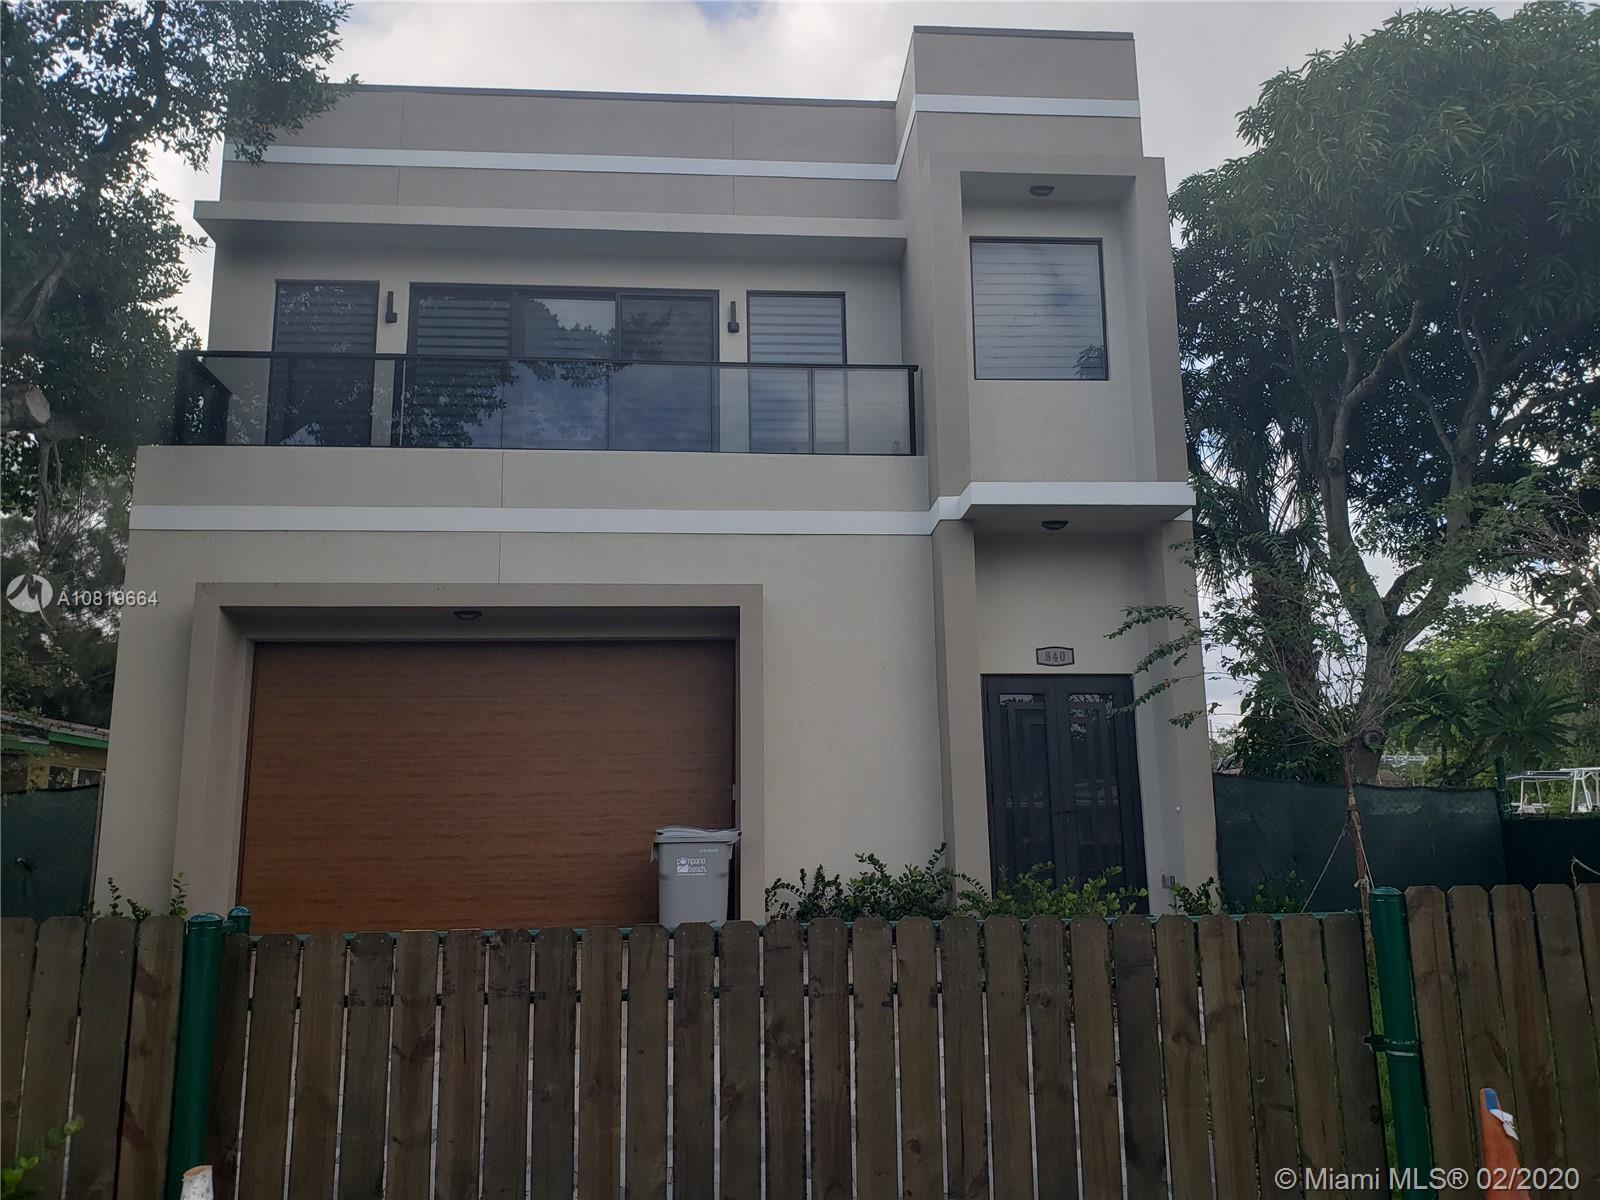 AMAZING NEW BRAND HOUSE!!!!! More than 4000 square feet, two floors, garage enough to park 8 cars or